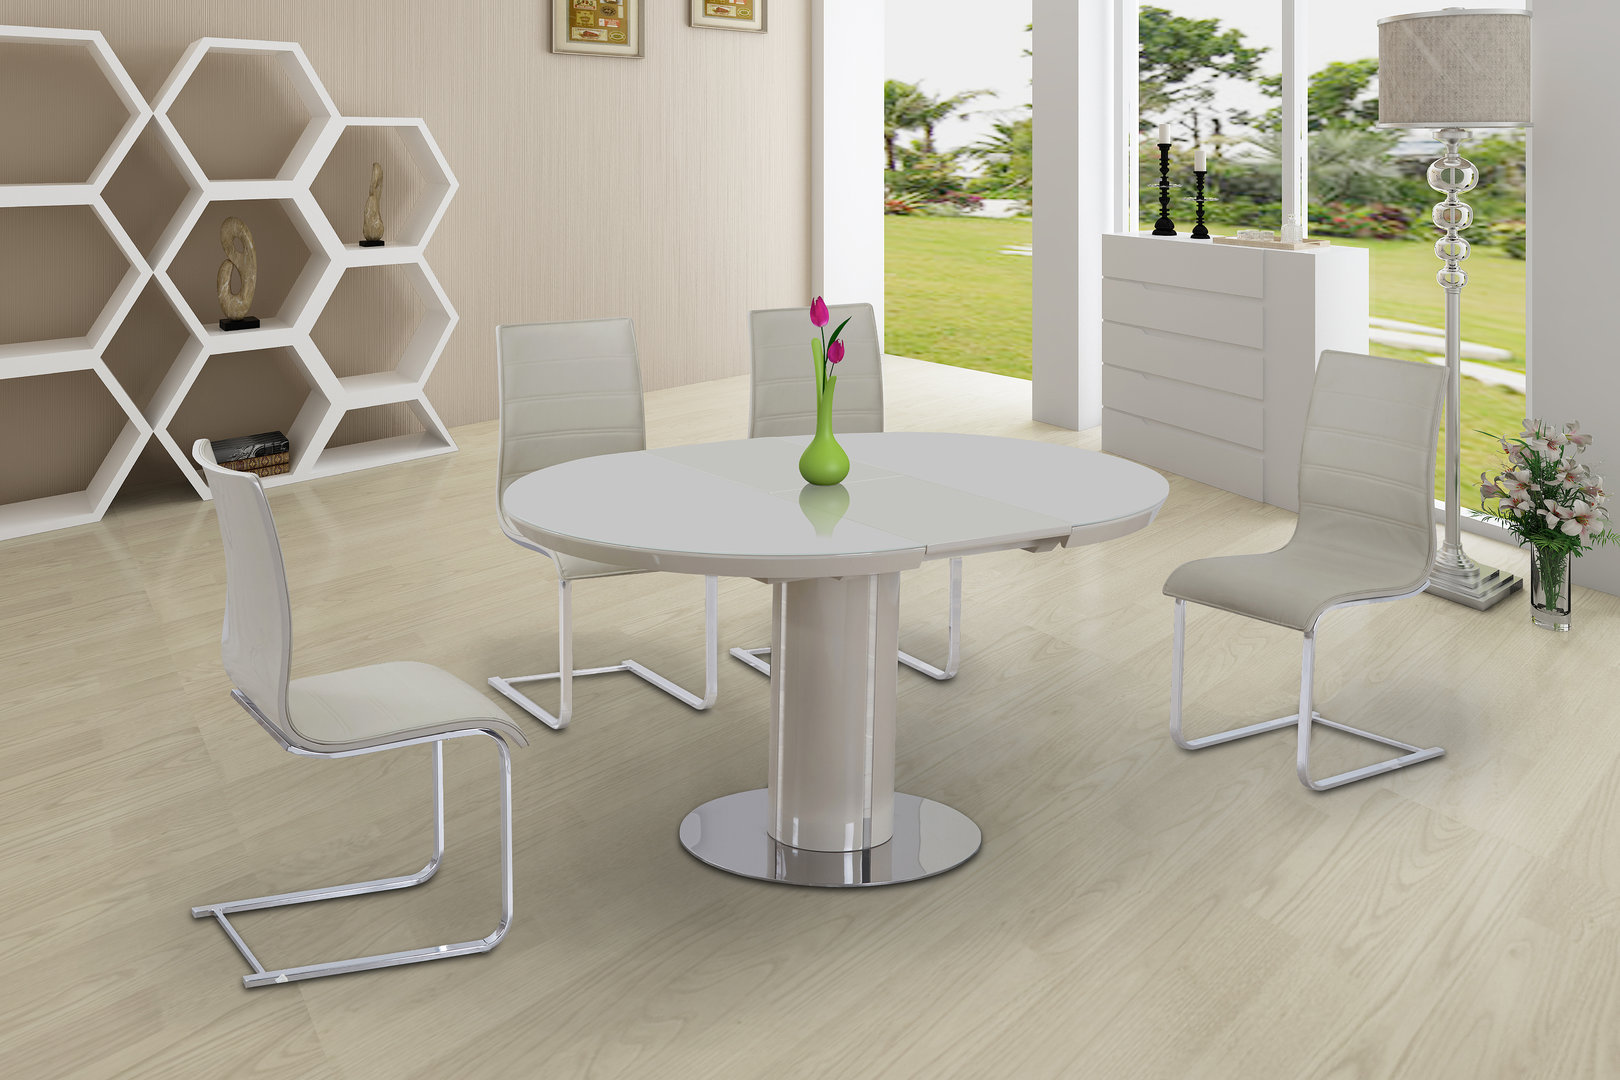 kitchen table and 6 chairs uk target lounge round cream glass high gloss dining